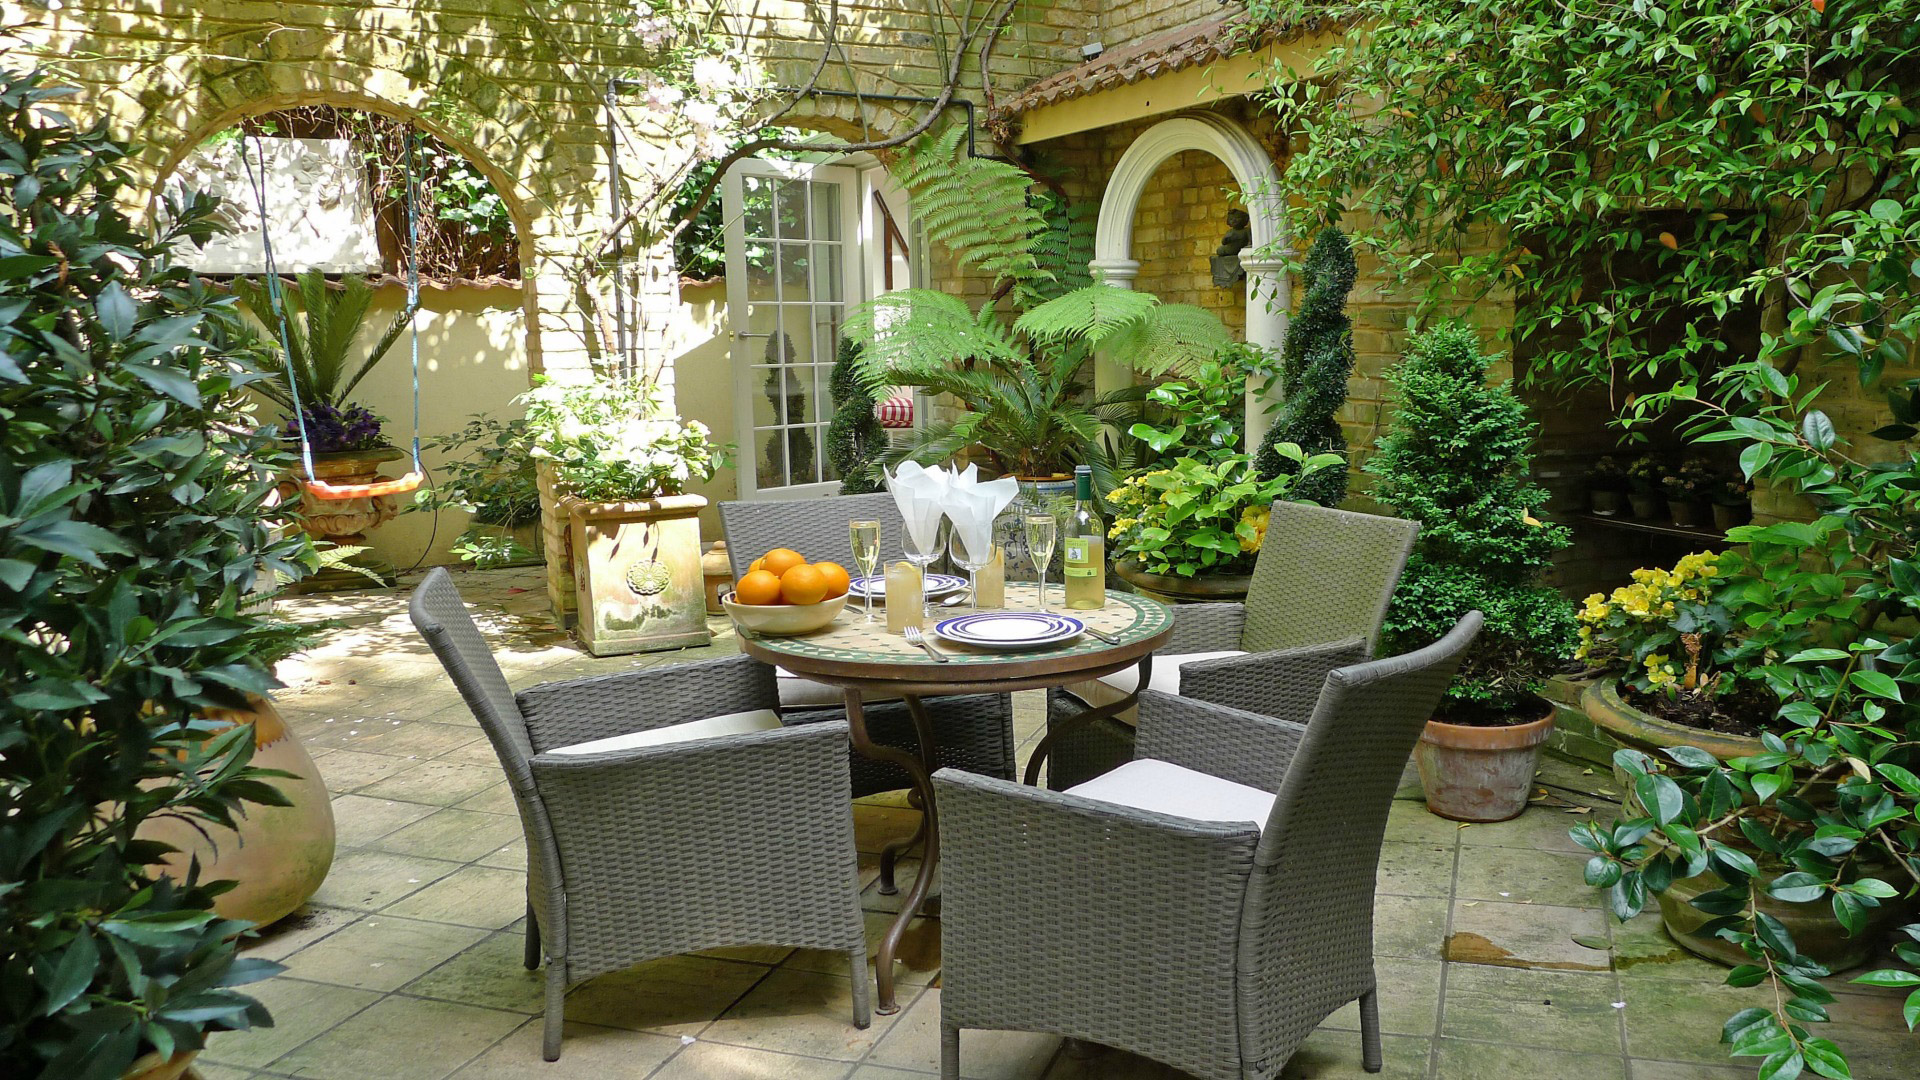 Kensington vacation apartment with patio garden for Indoor garden design uk